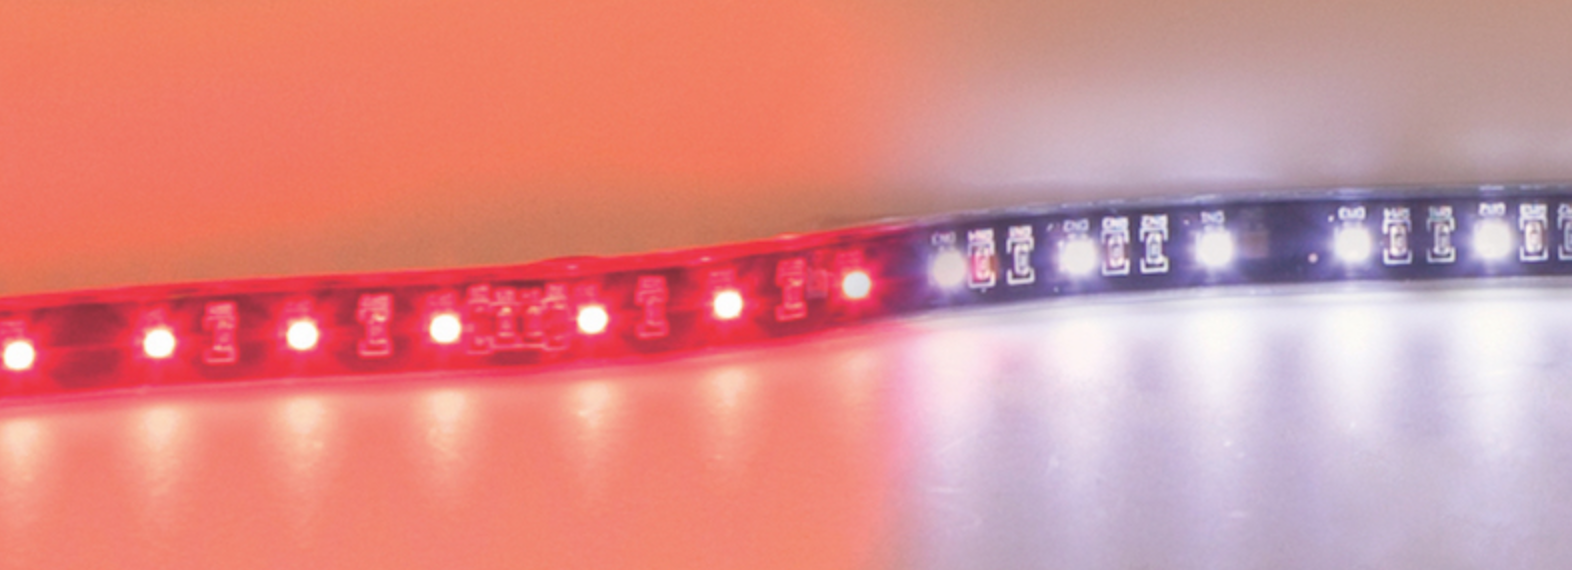 Maxxima Introduces Flexible LED STT/BU Strip Lights for Trucks, Trailers